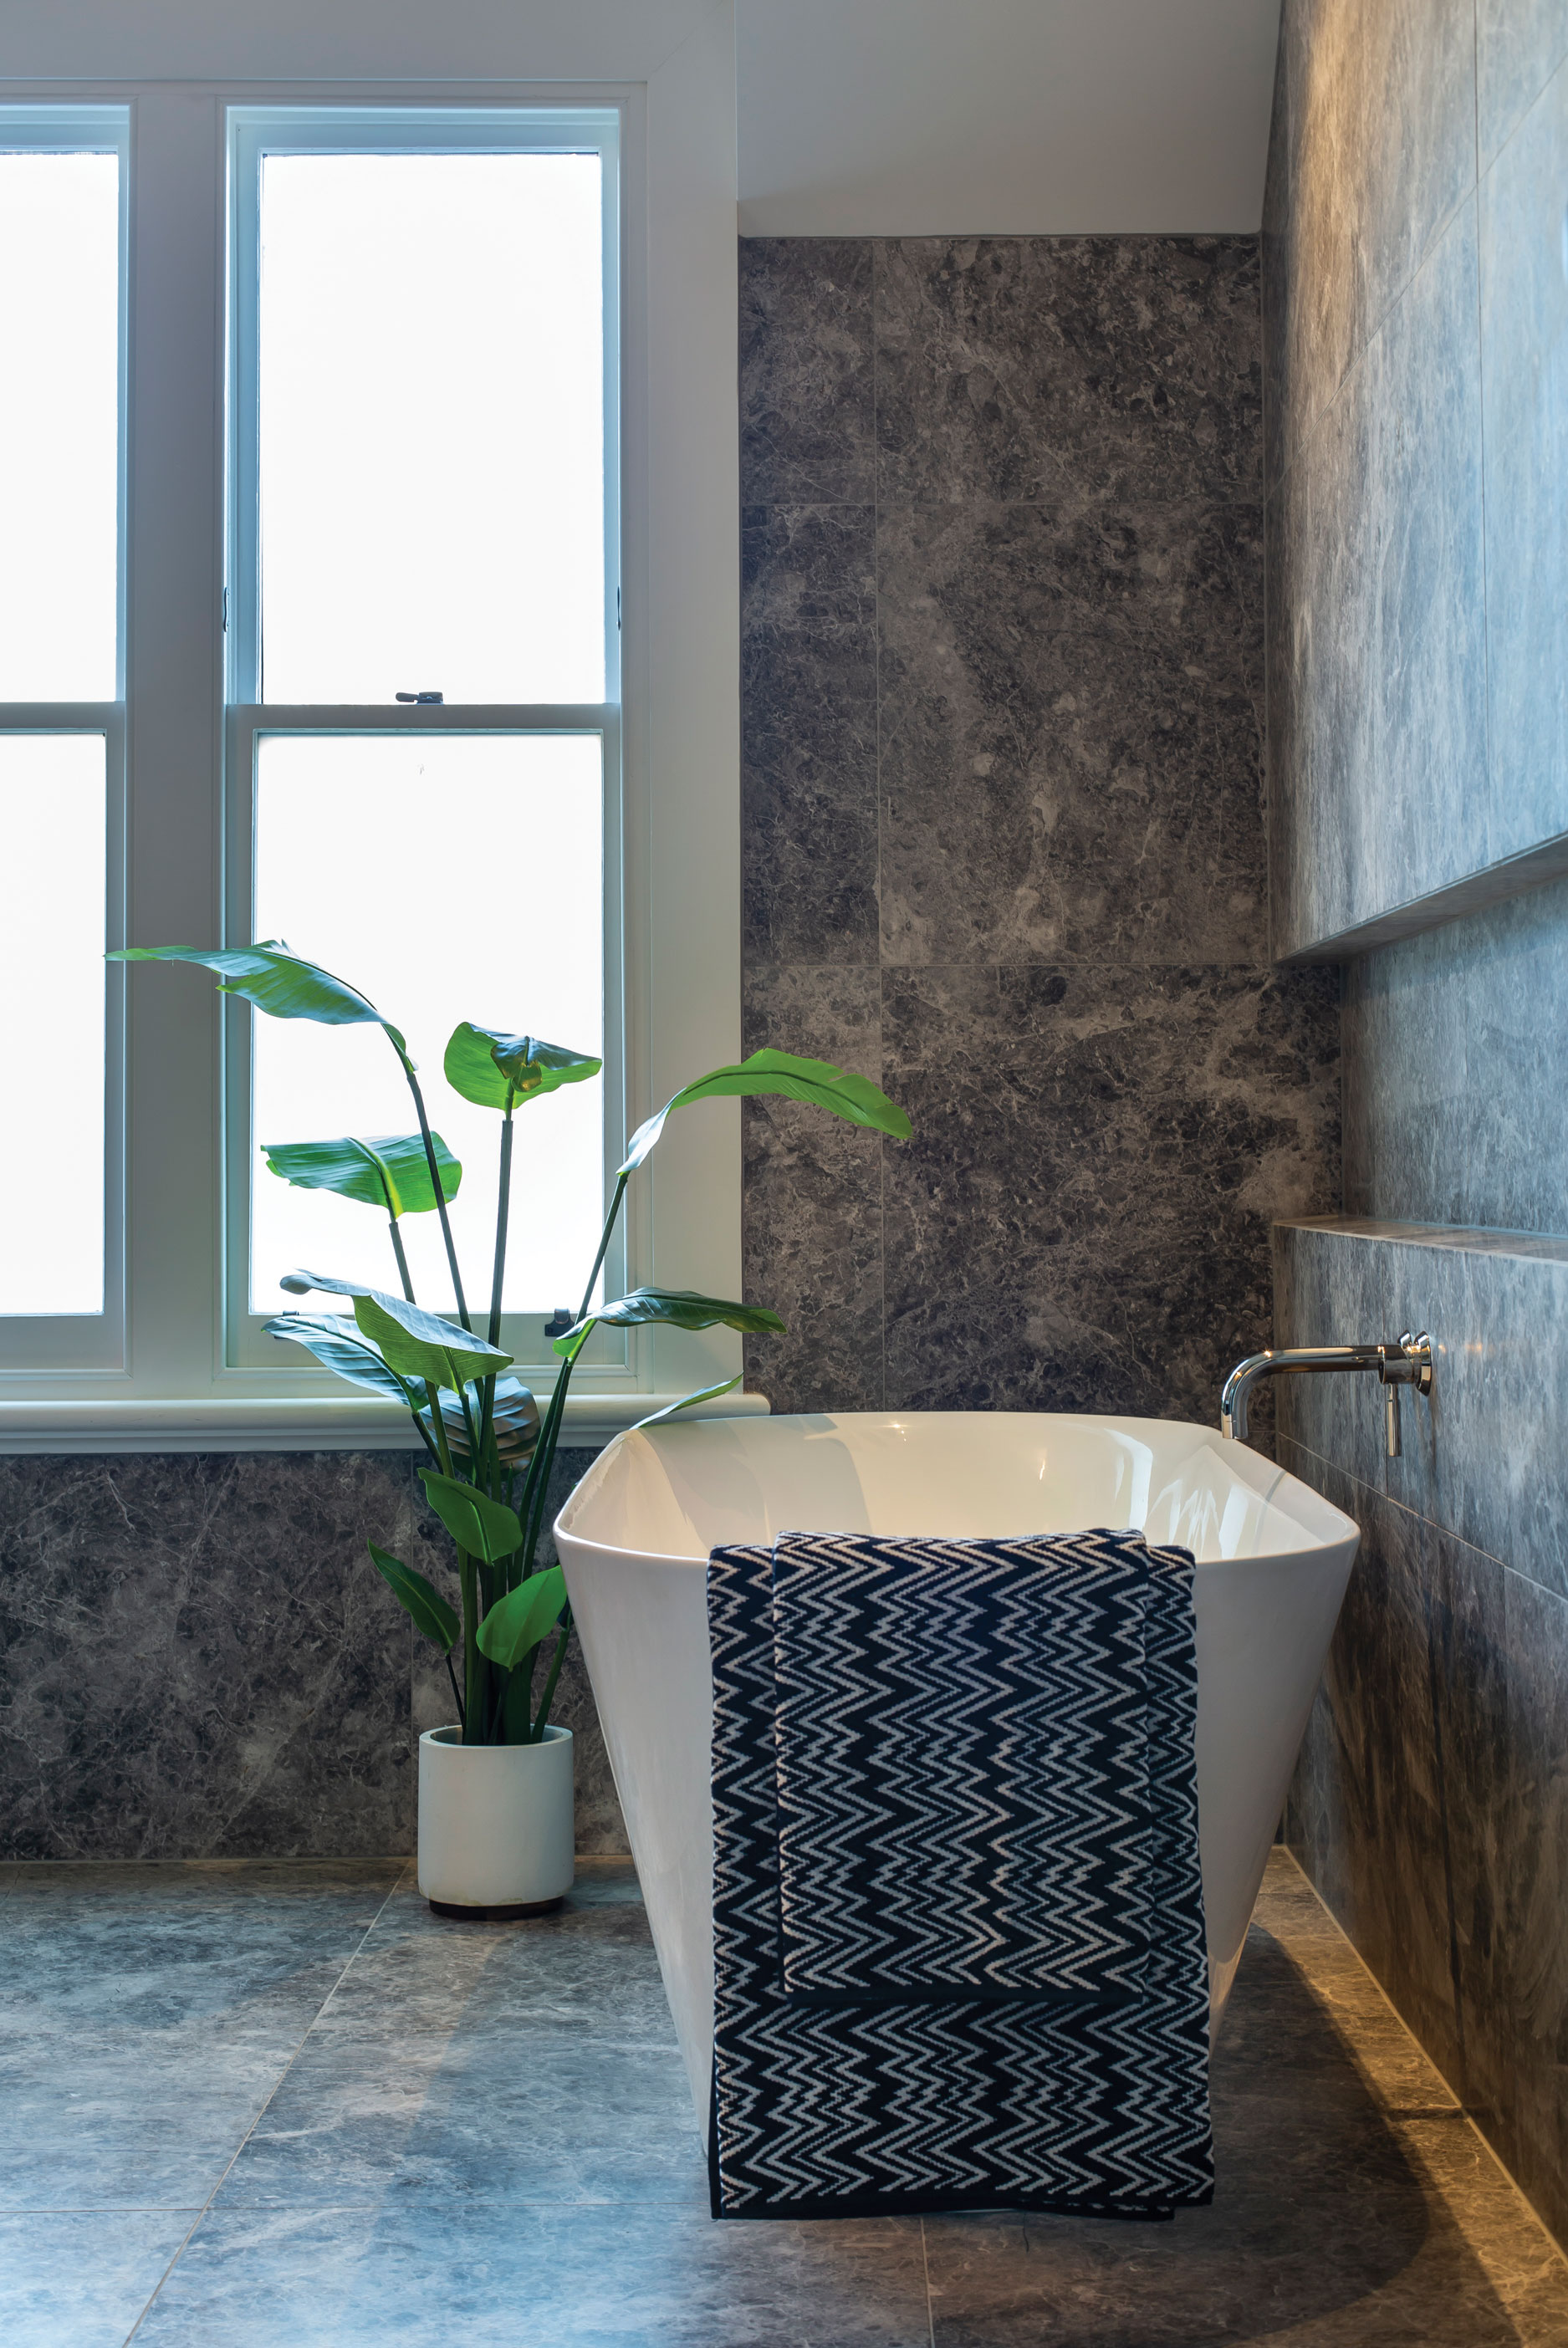 A luxurious addition to this peaceful space is the Sonit Clearstone freestanding bath from BathCo. The Missoni towels are from Corso Merivale.